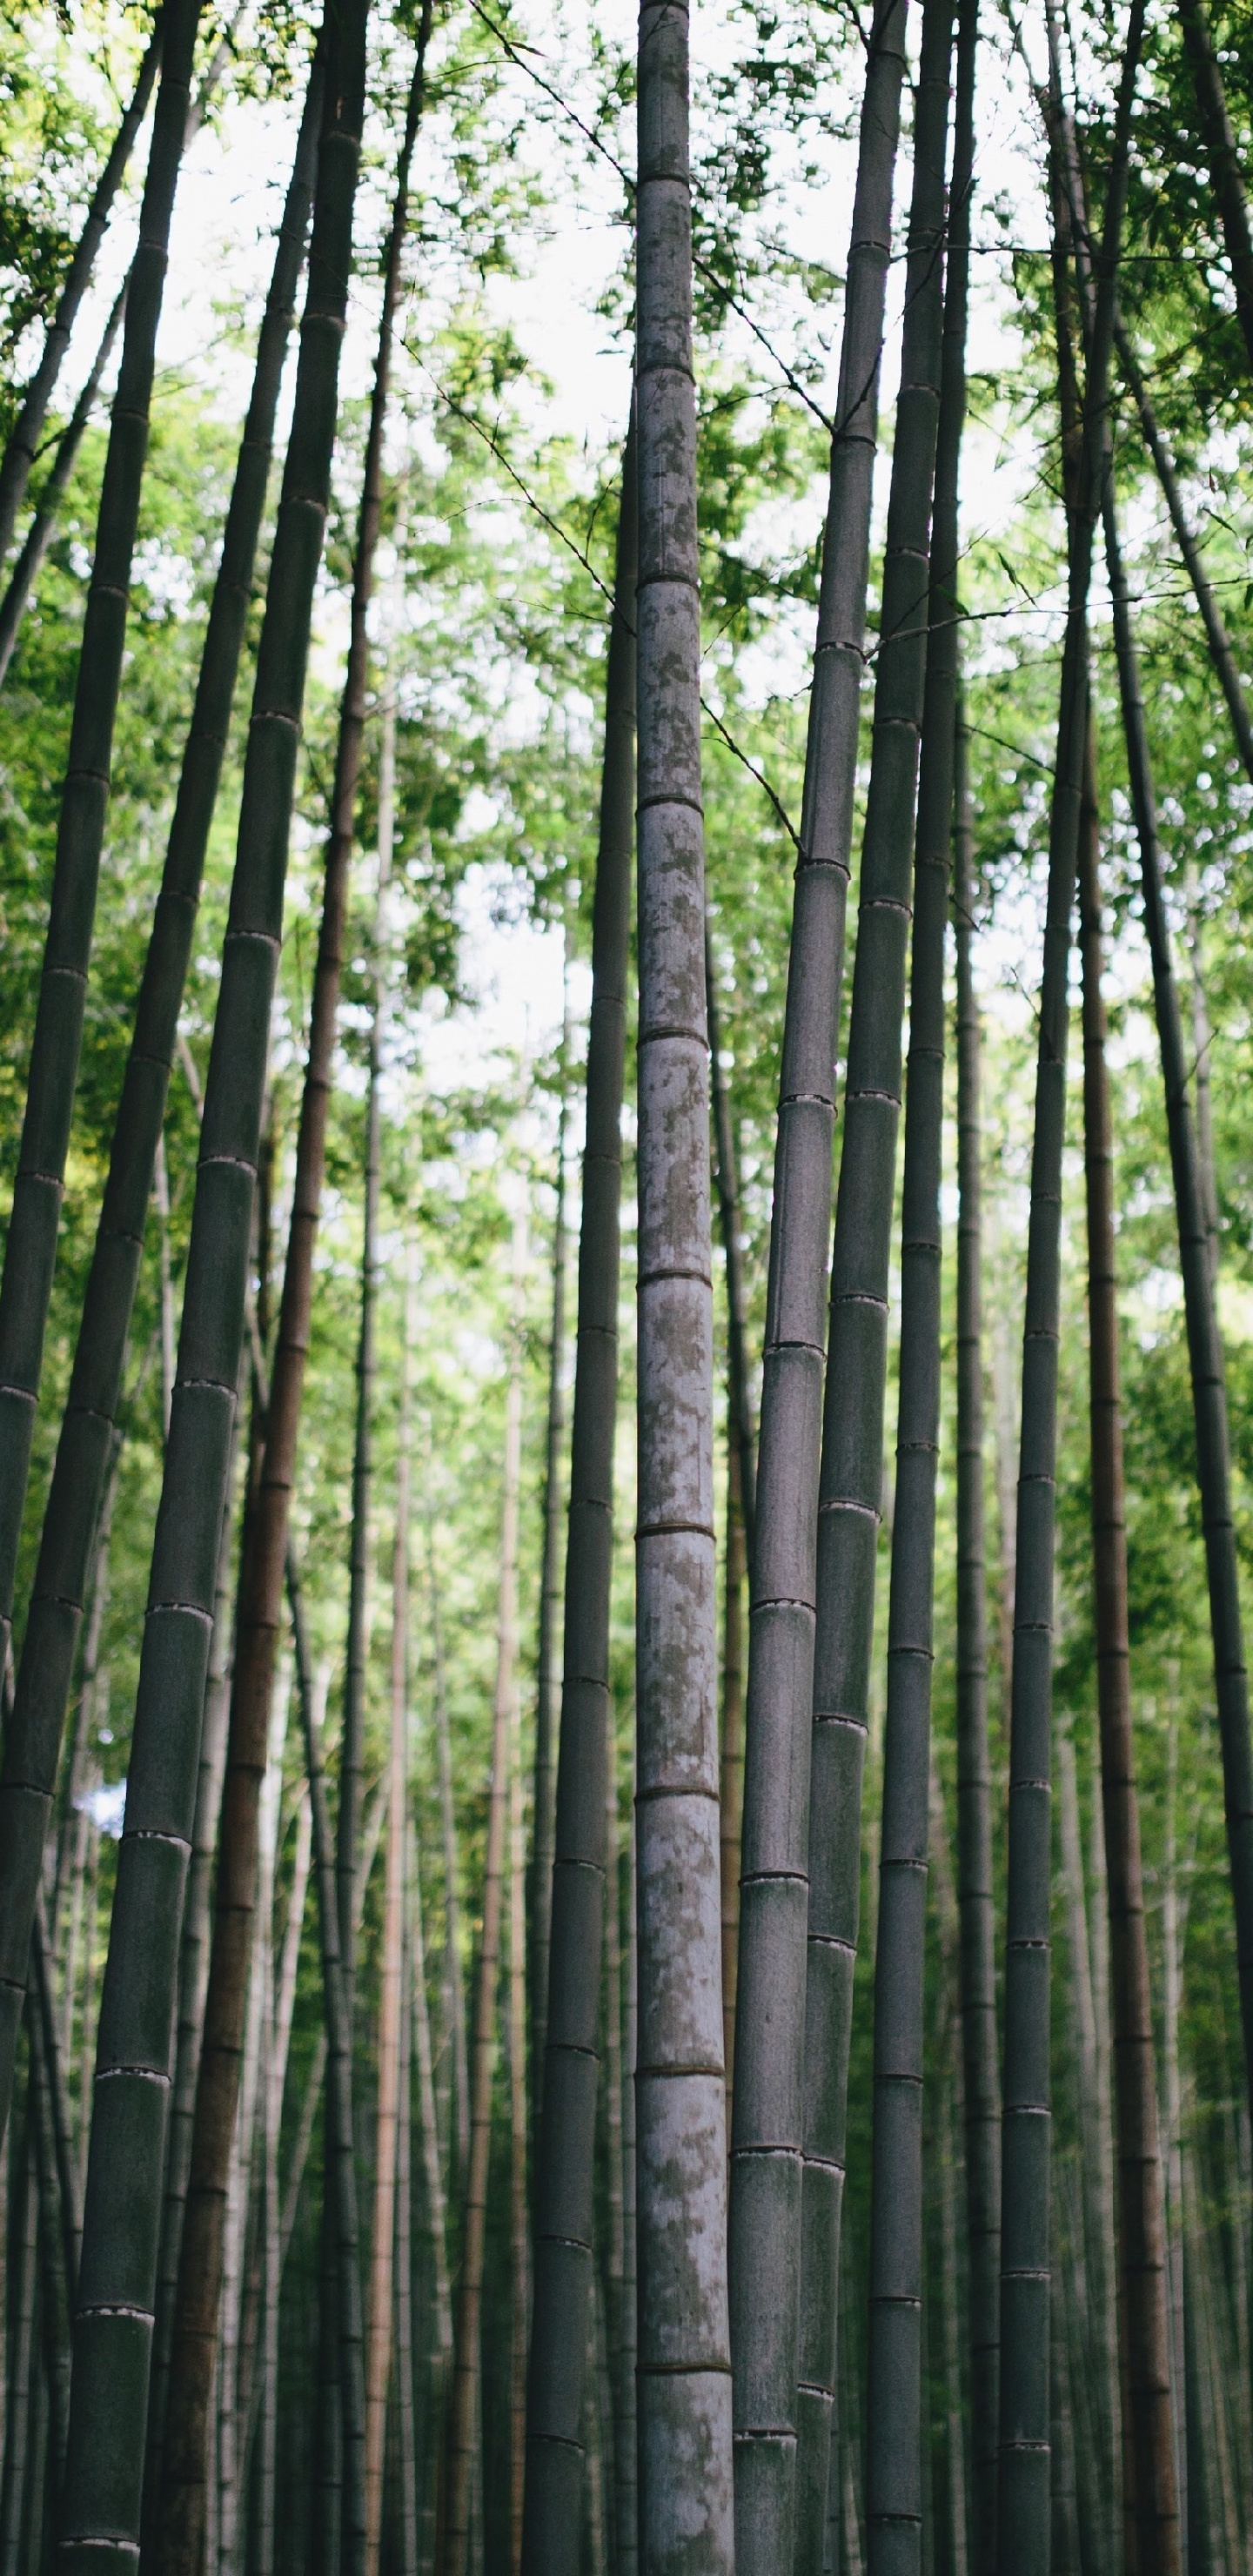 Bamboo, Forest, Trees, Nature, Wallpaper - Bamboo Forest - HD Wallpaper